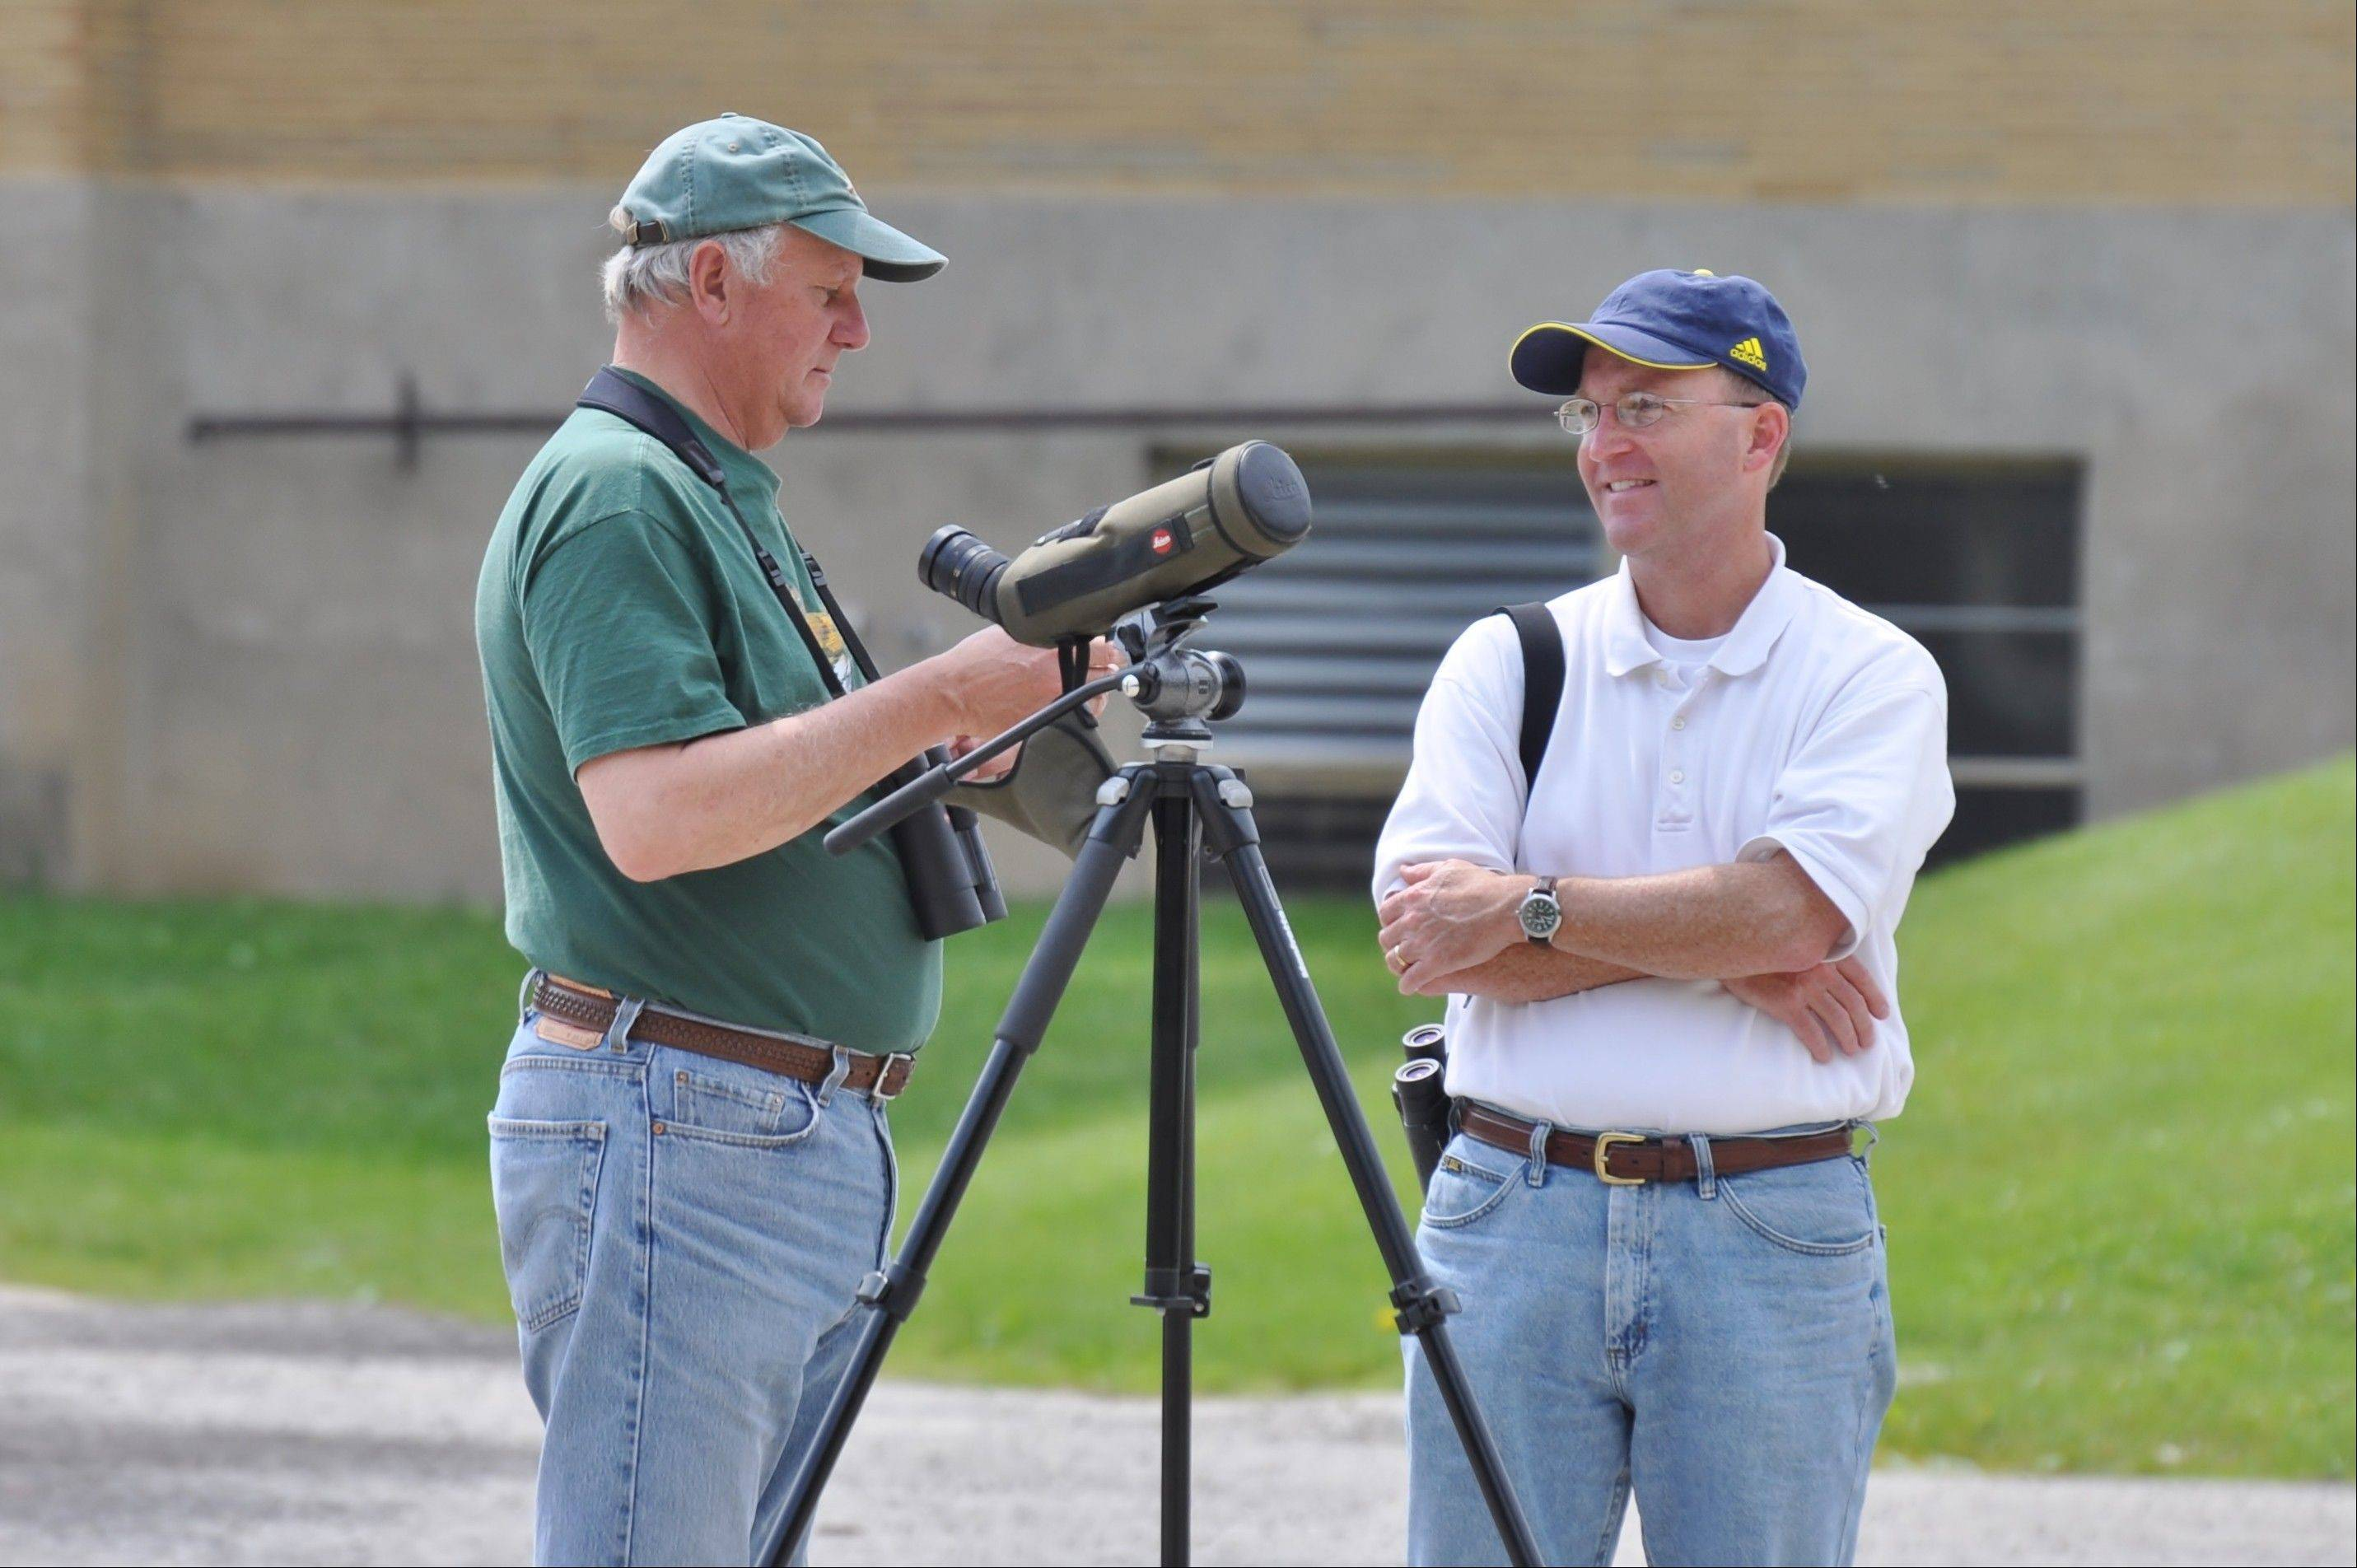 Jeff Reiter, right, met up with birder Dan Williams in Rockford recently to spot a Mississippi kite, several of which are nesting near a school in Rockford.